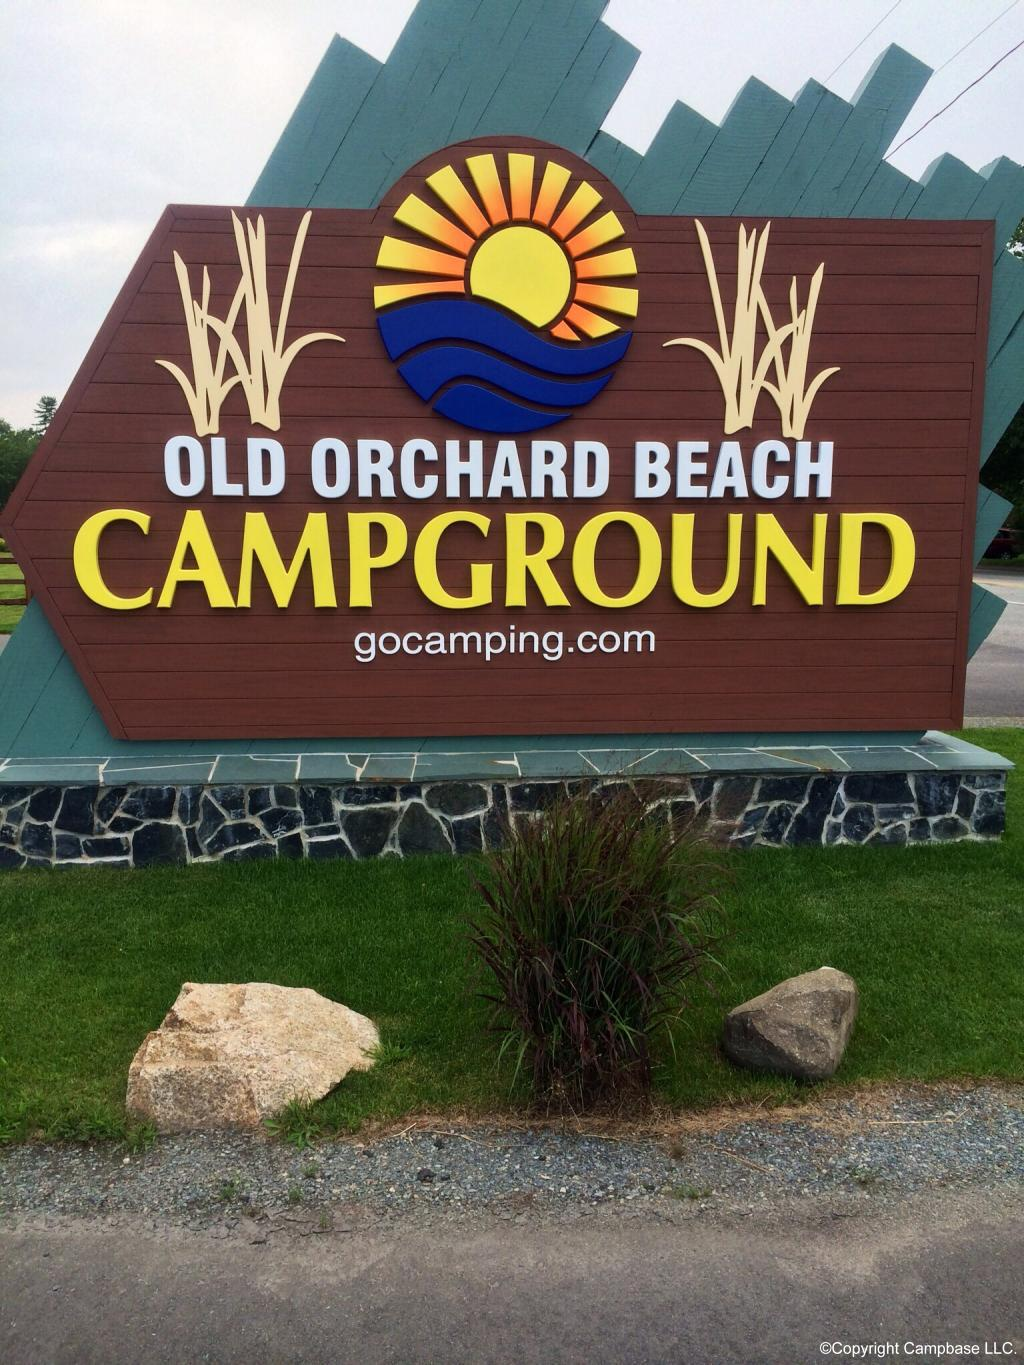 Old Orchard Beach Campground Old Orchard Beach Maine